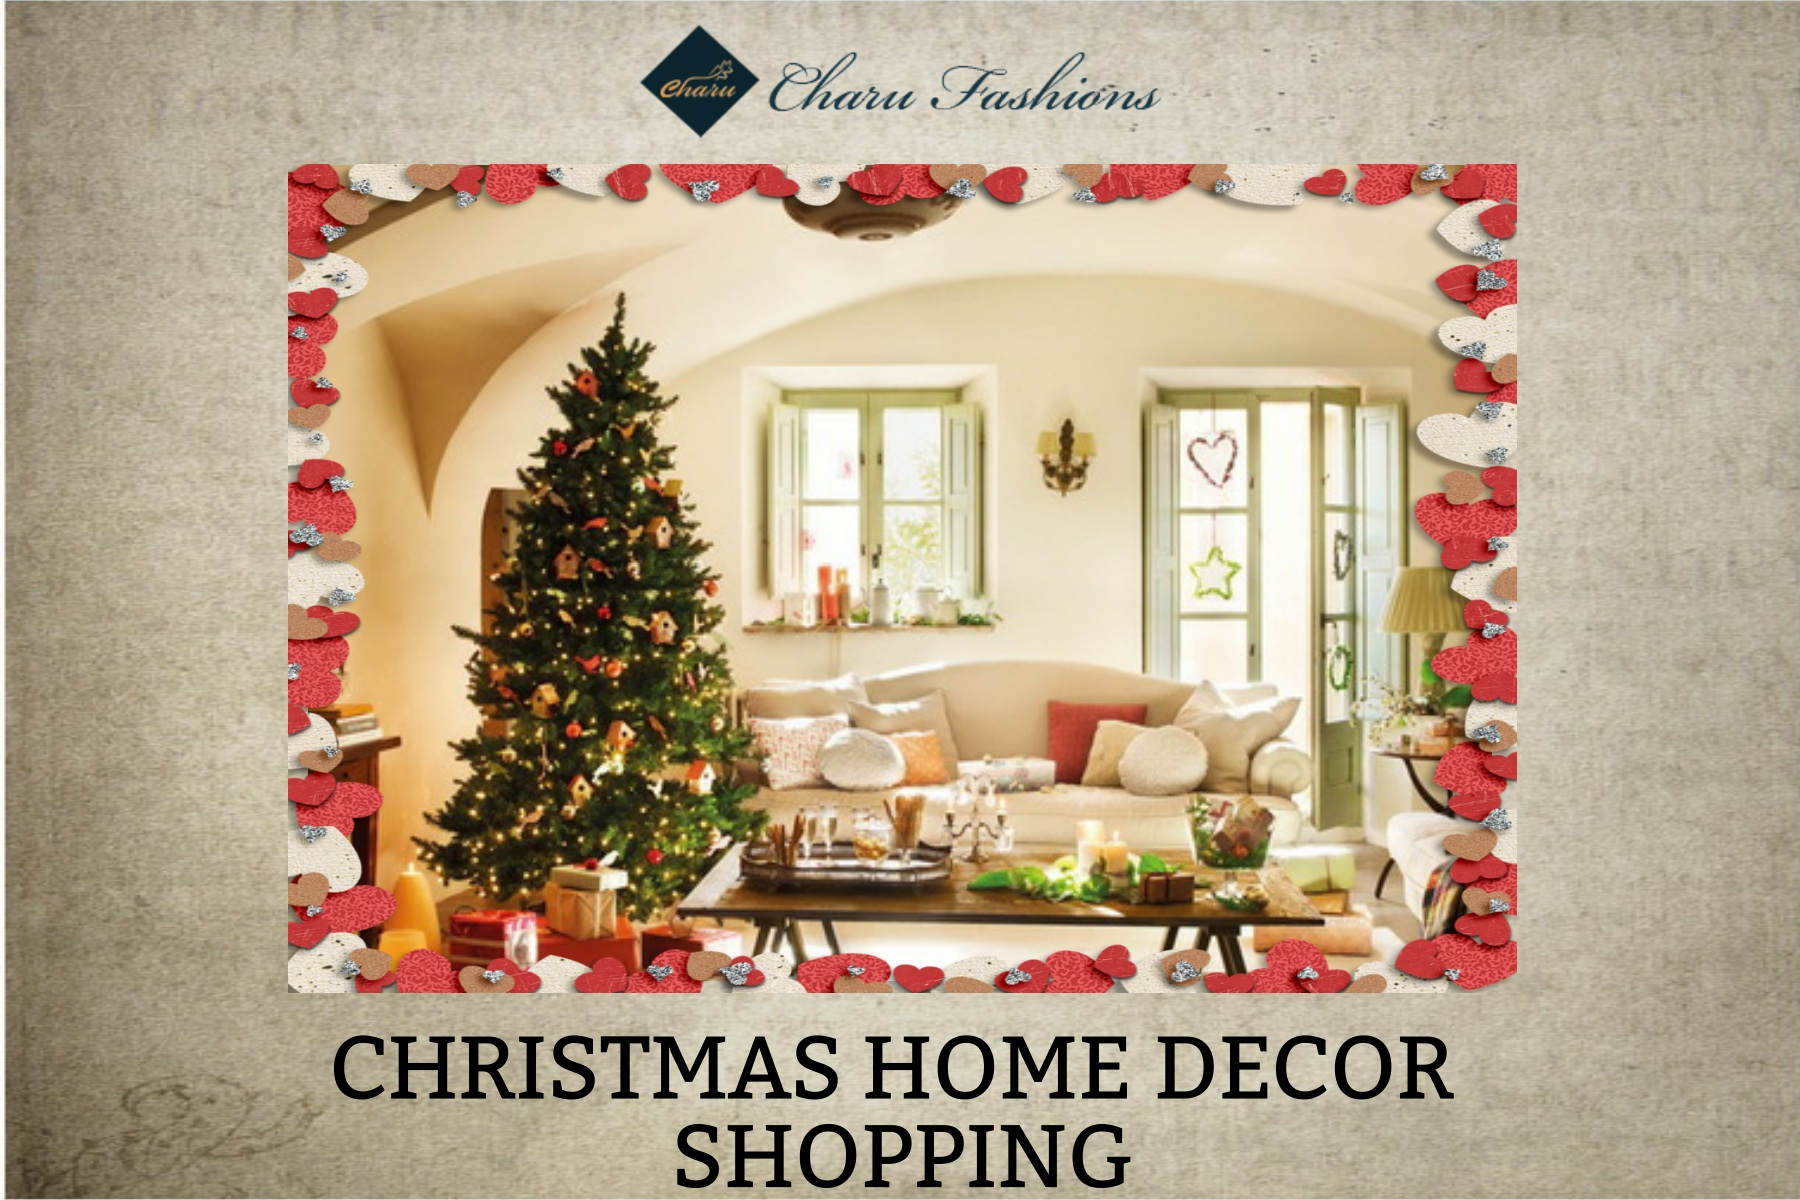 Christmas 2015 wholesale home decor items charu fashions for Christmas home designs